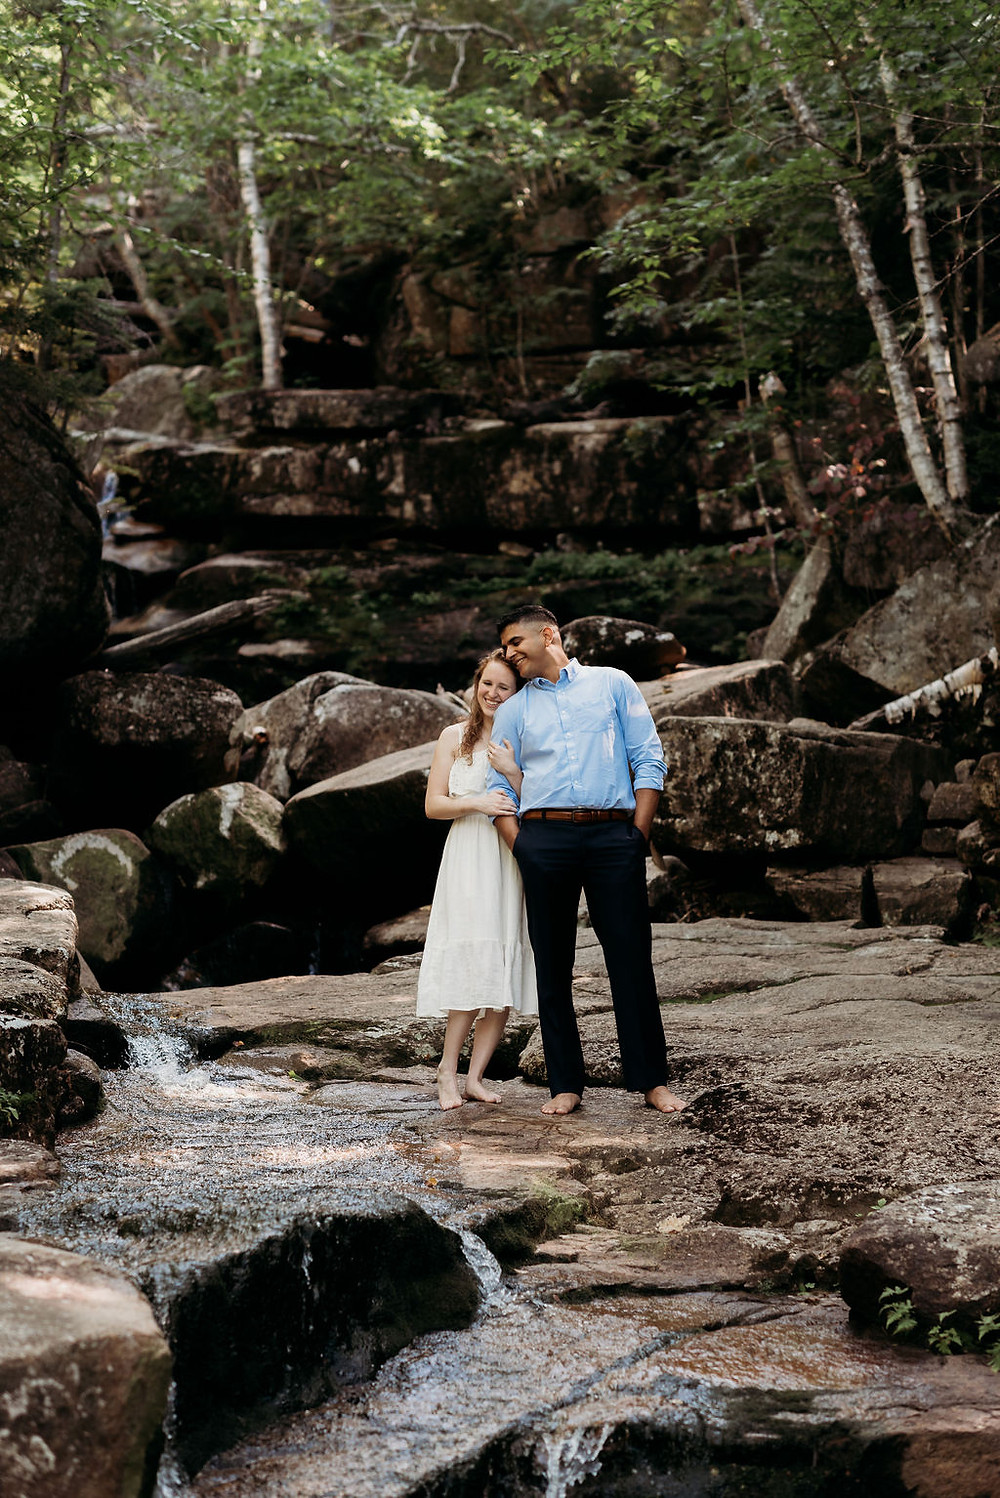 bride and groom by Champney falls during the mount chocorua hike for their elopement. New Hampshire elopement photographer